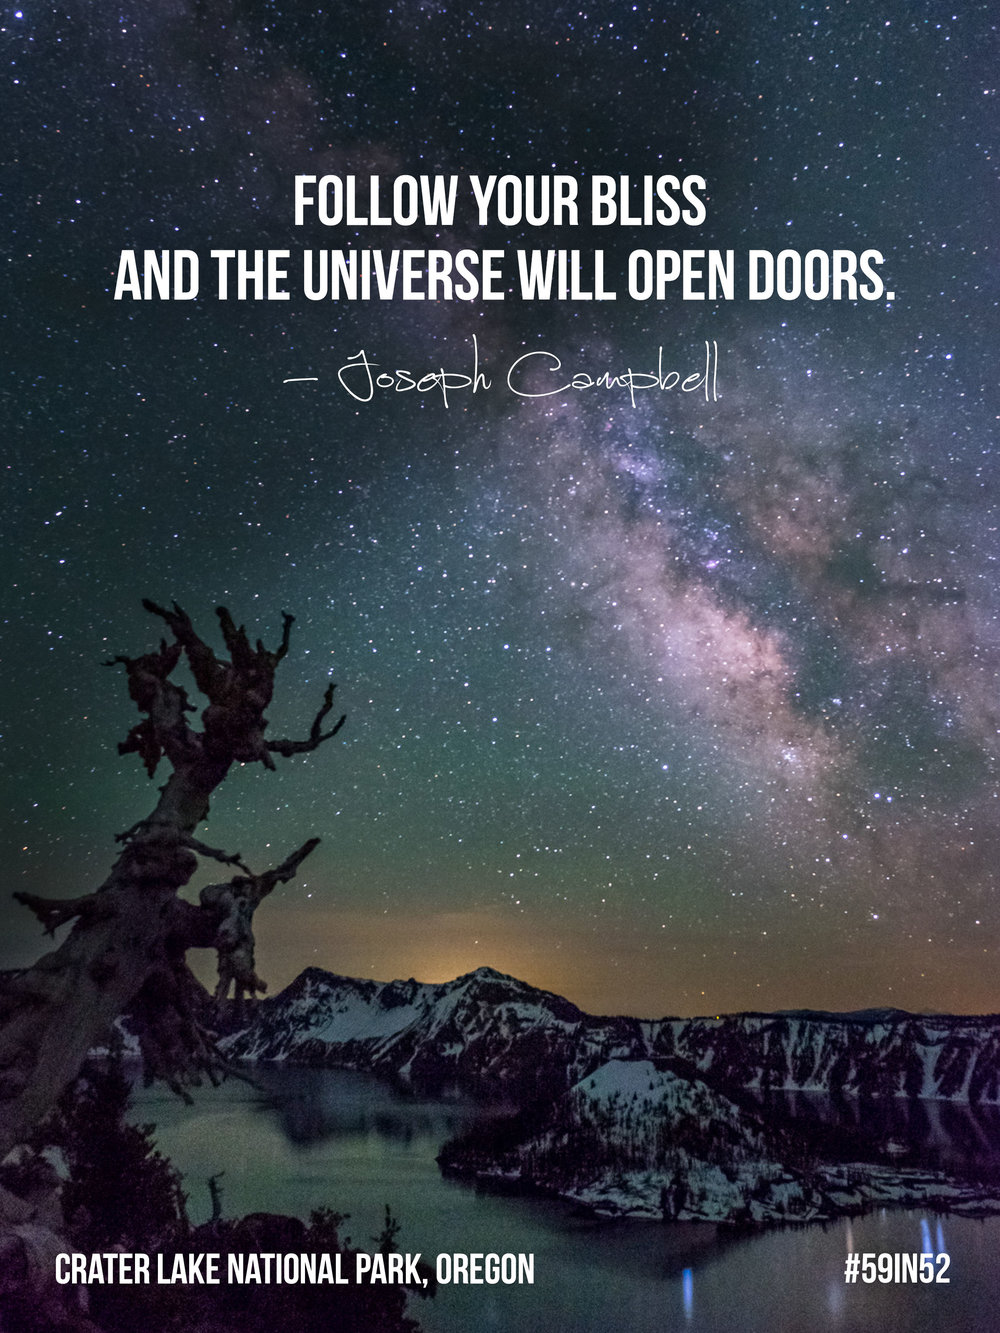 'Follow your bliss and the universe will open doors.' - Joseph Campbell